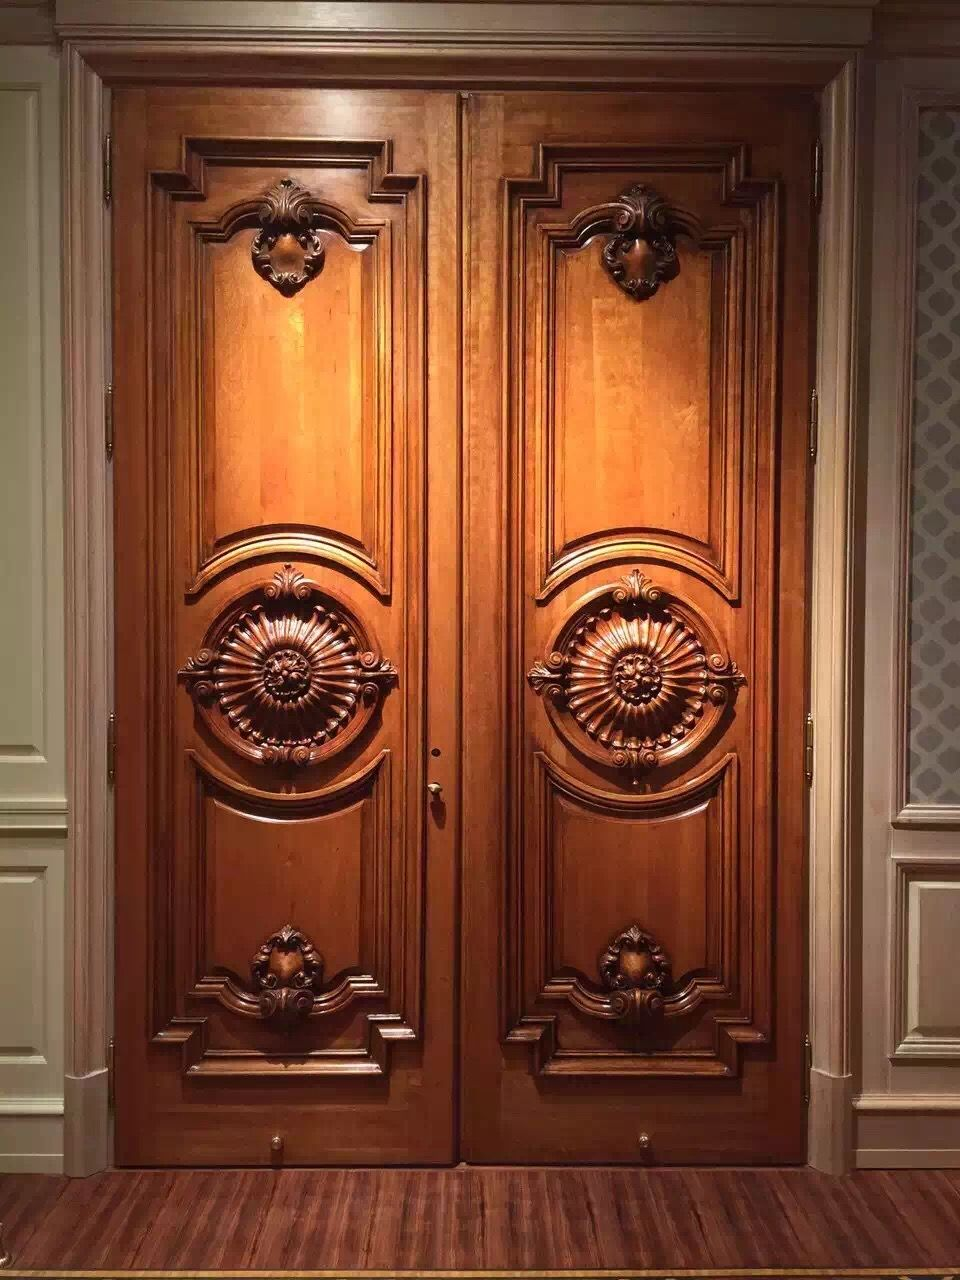 Furniture Design Door pinkelvin on ◎入户大门 wood doors | pinterest | doors, main